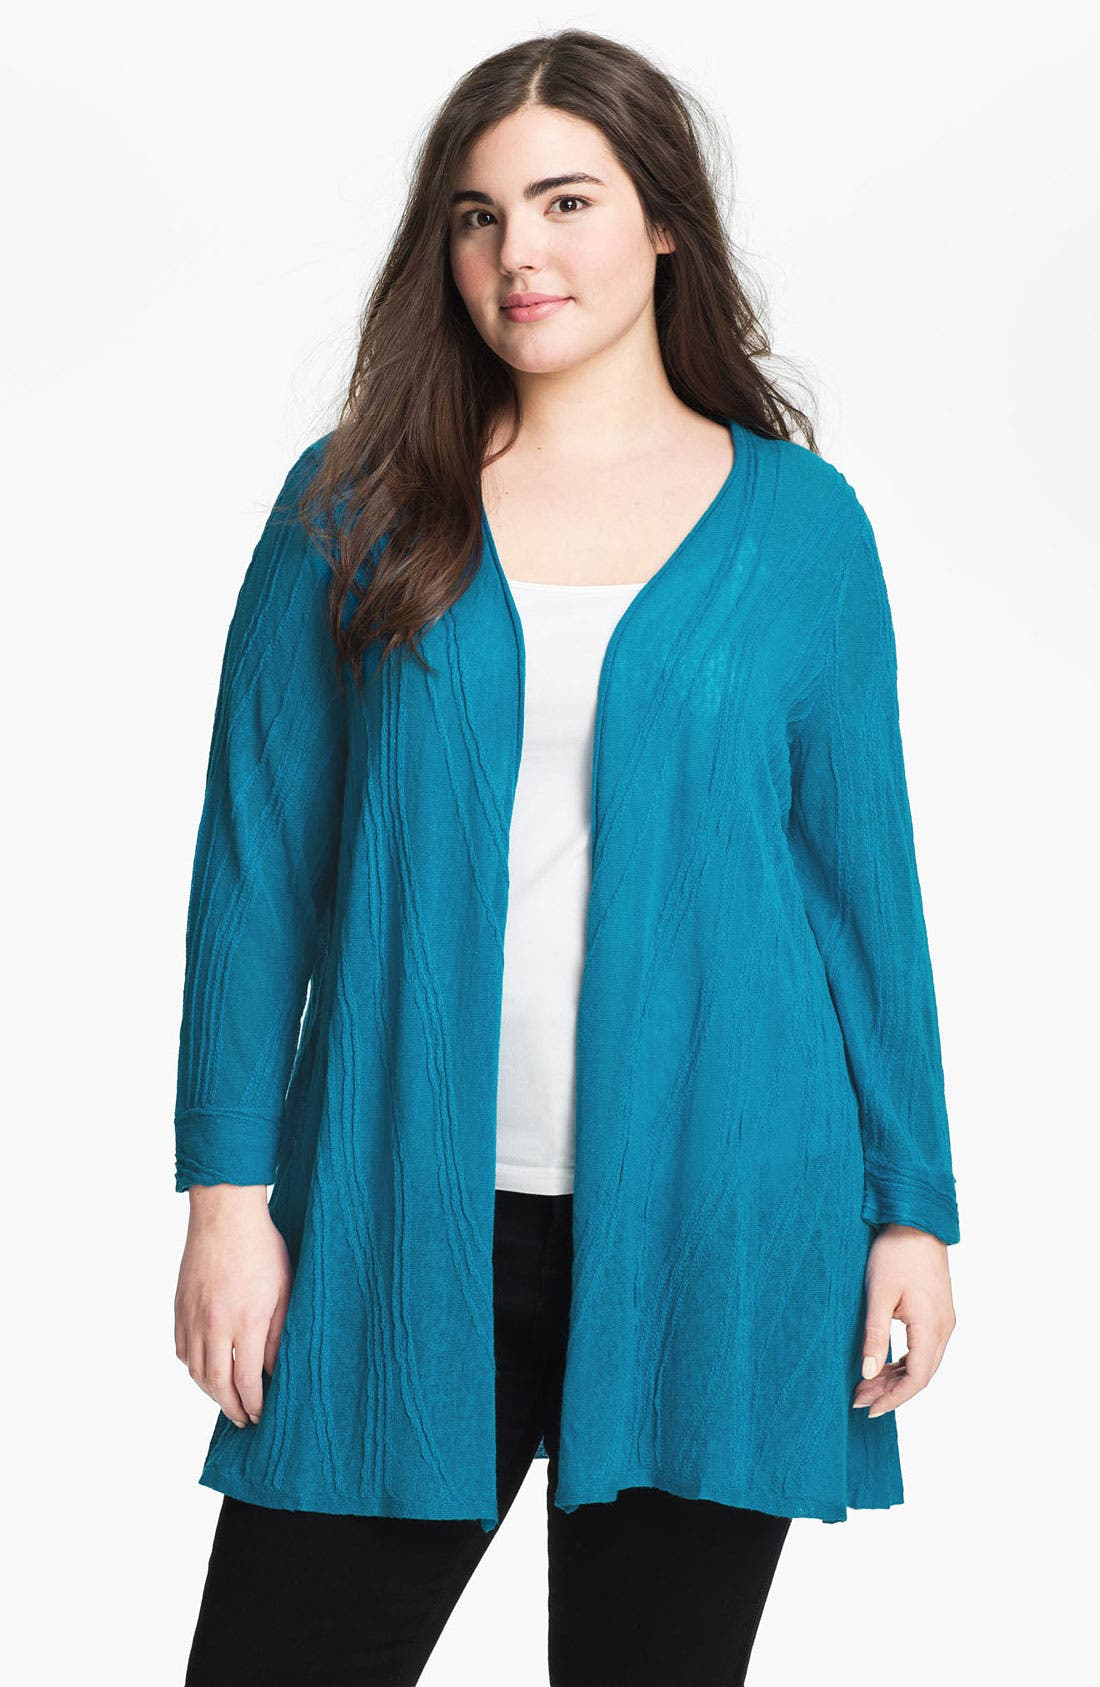 Main Image - Nic + Zoe Textured Cardigan (Plus)